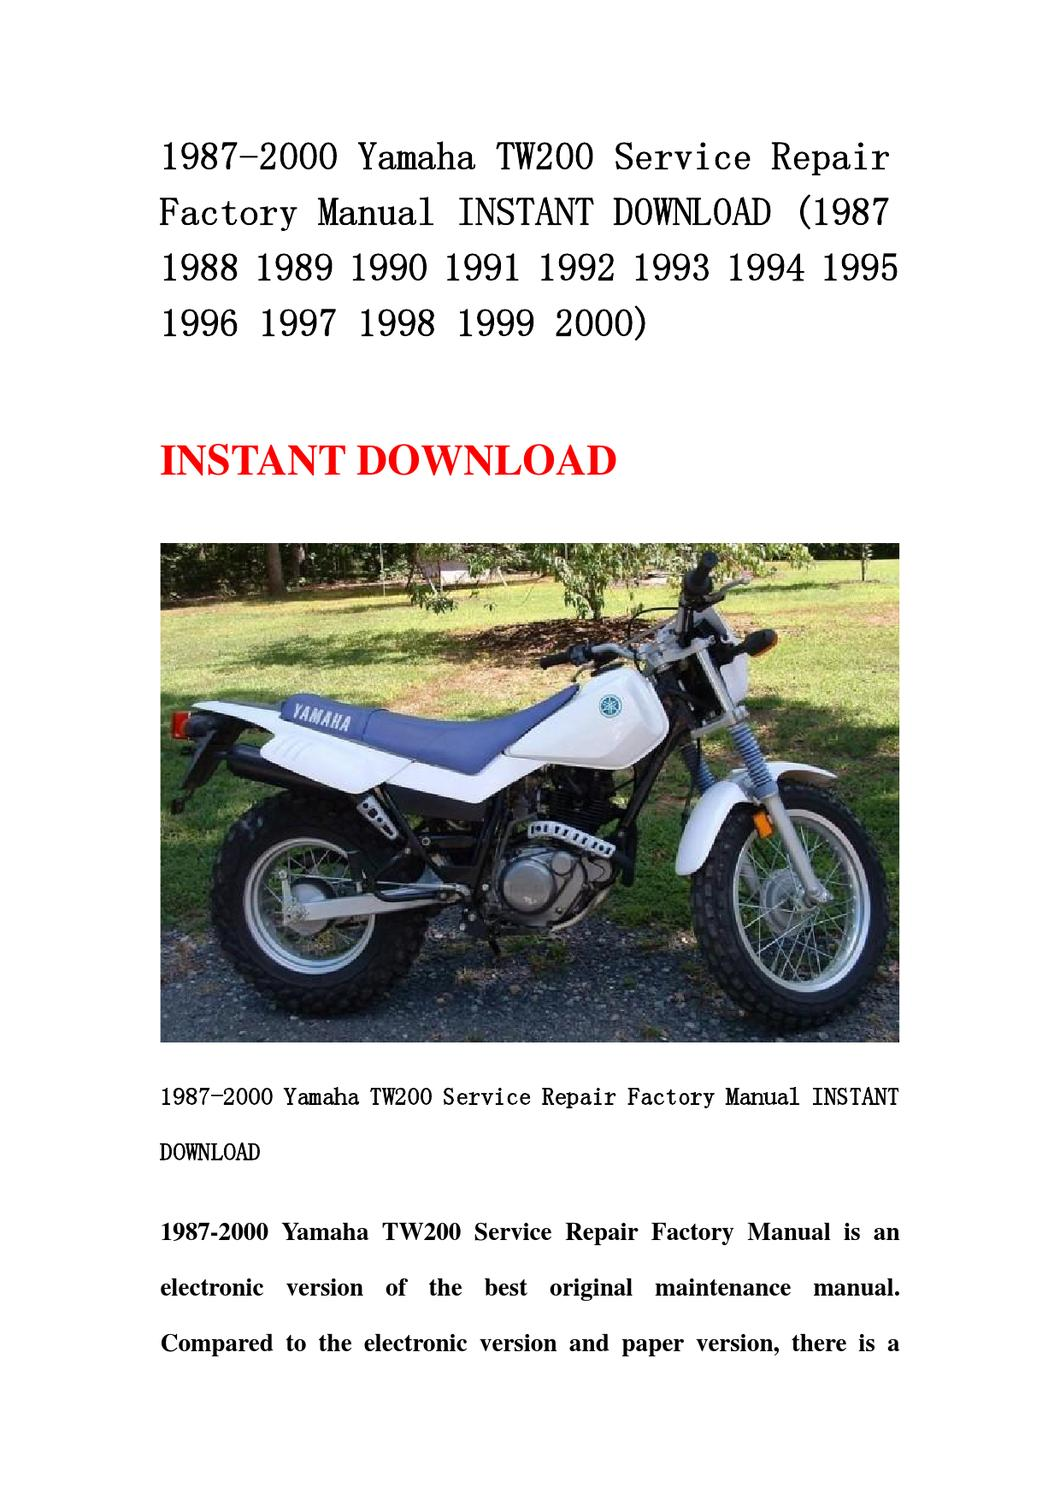 1987-2000 Yamaha TW200 Service Repair Factory Manual INSTANT DOWNLOAD (1987  1988 1989 1990 1991 1992 by li hao - issuu